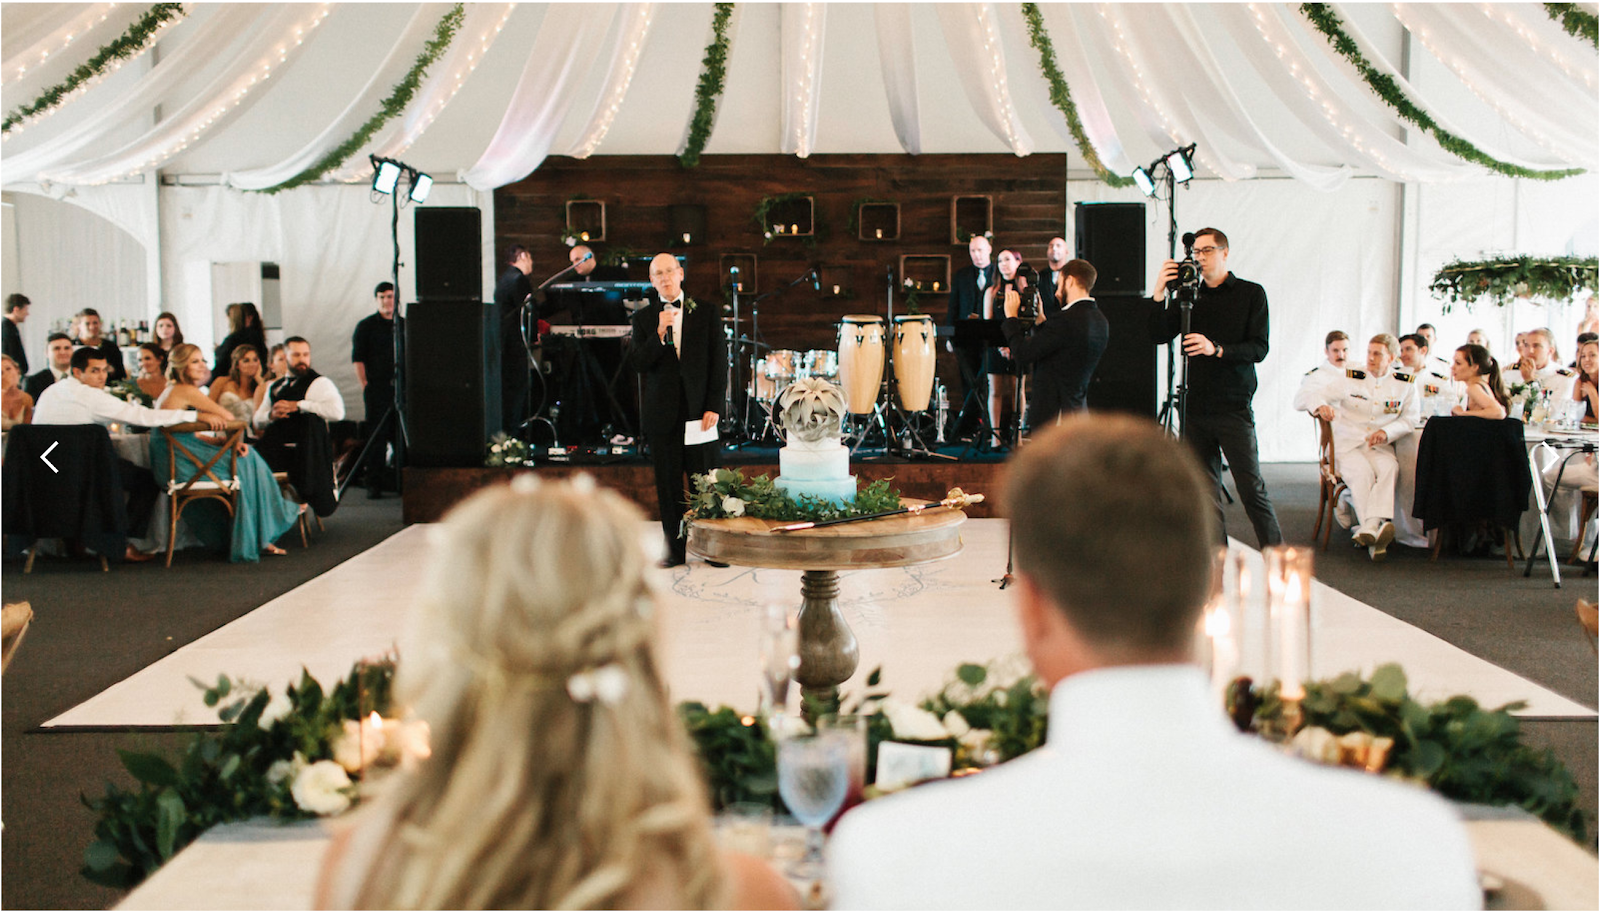 The Paradise Ballroom at the Herrington on the Bay - photo via herringtononthebay.com